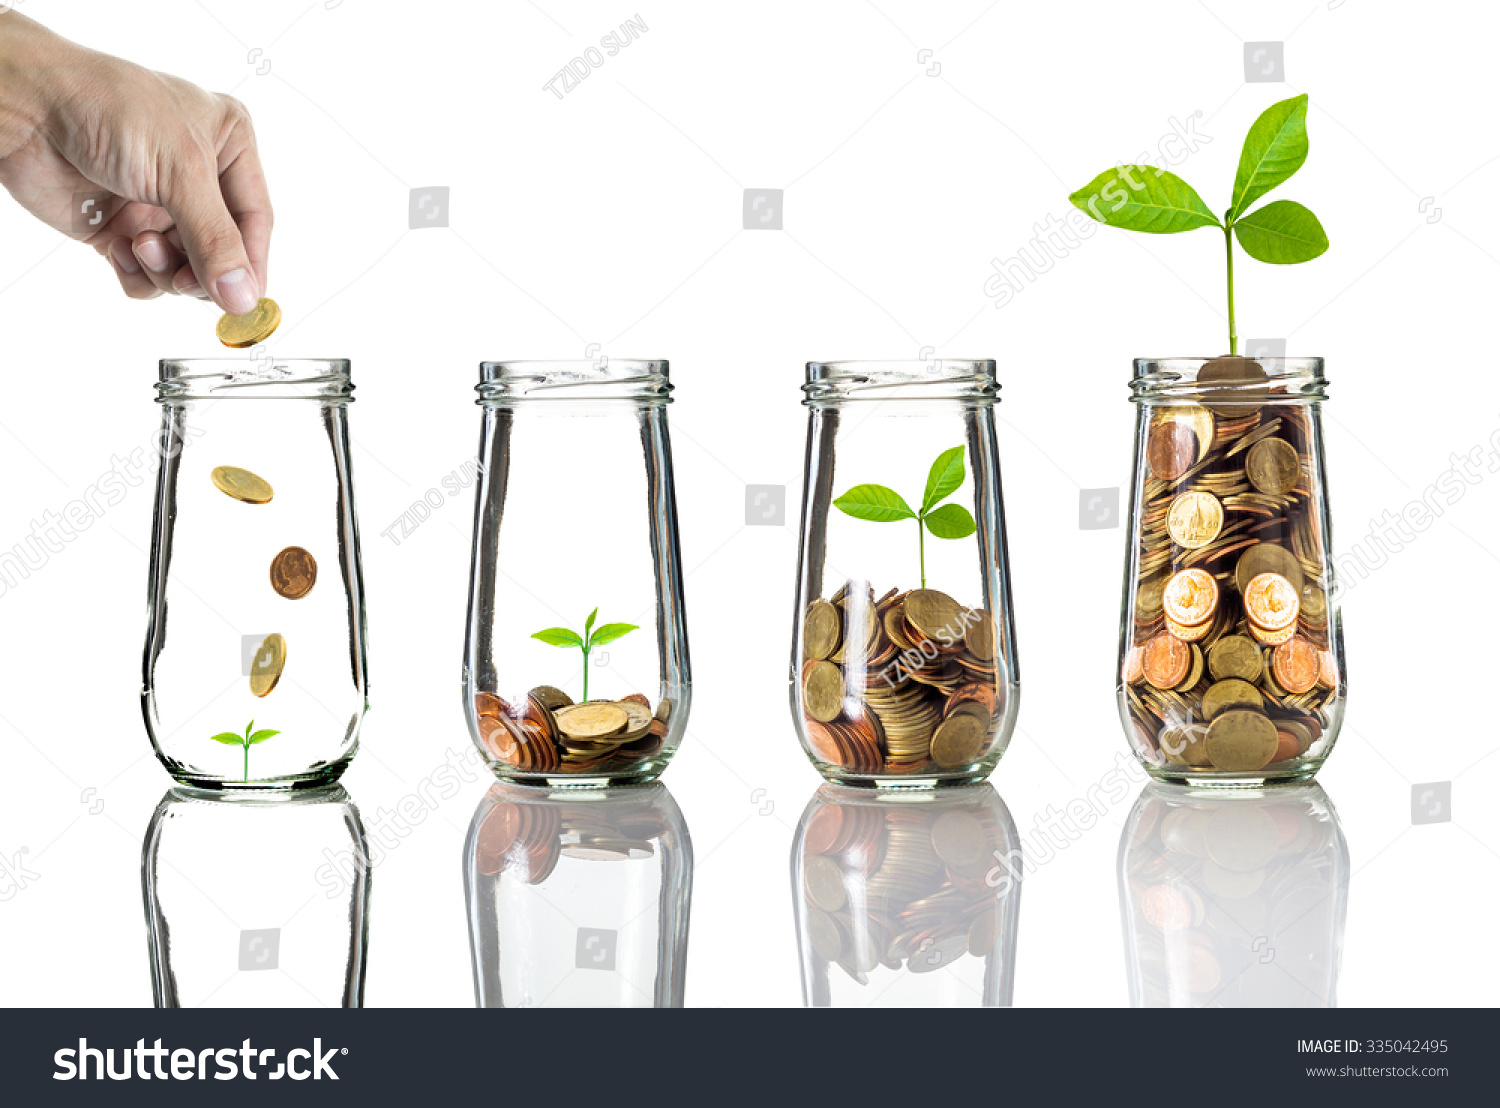 Hand putting gold coins into clear bottle on white background,Business investment growth concept #335042495